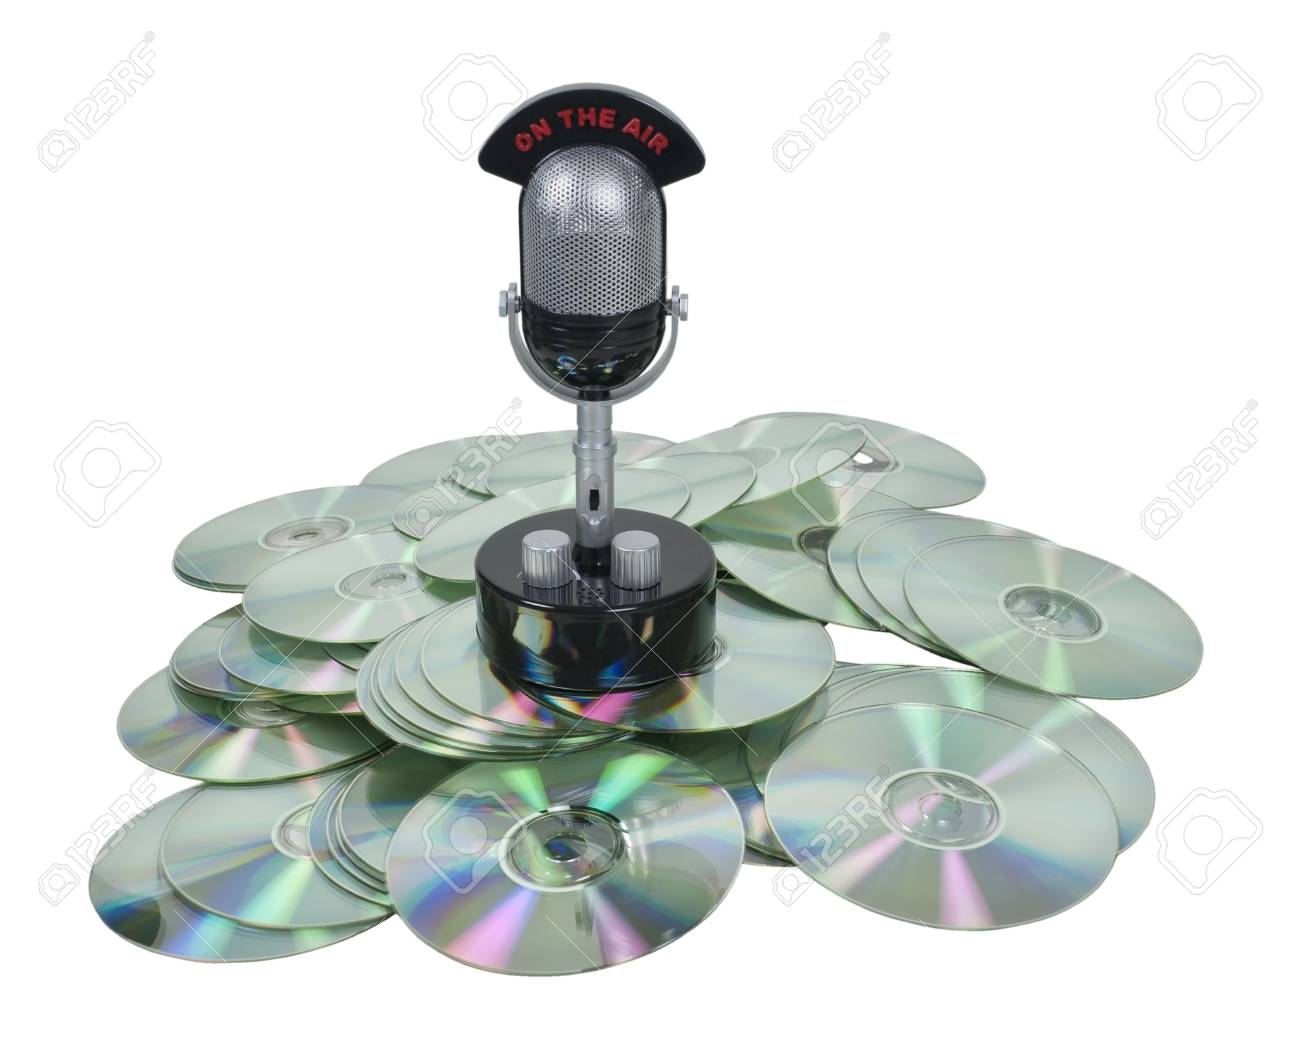 Saved broadcasts shown by a retro pill audio microphone on a pile of disks Stock Photo - 9445682